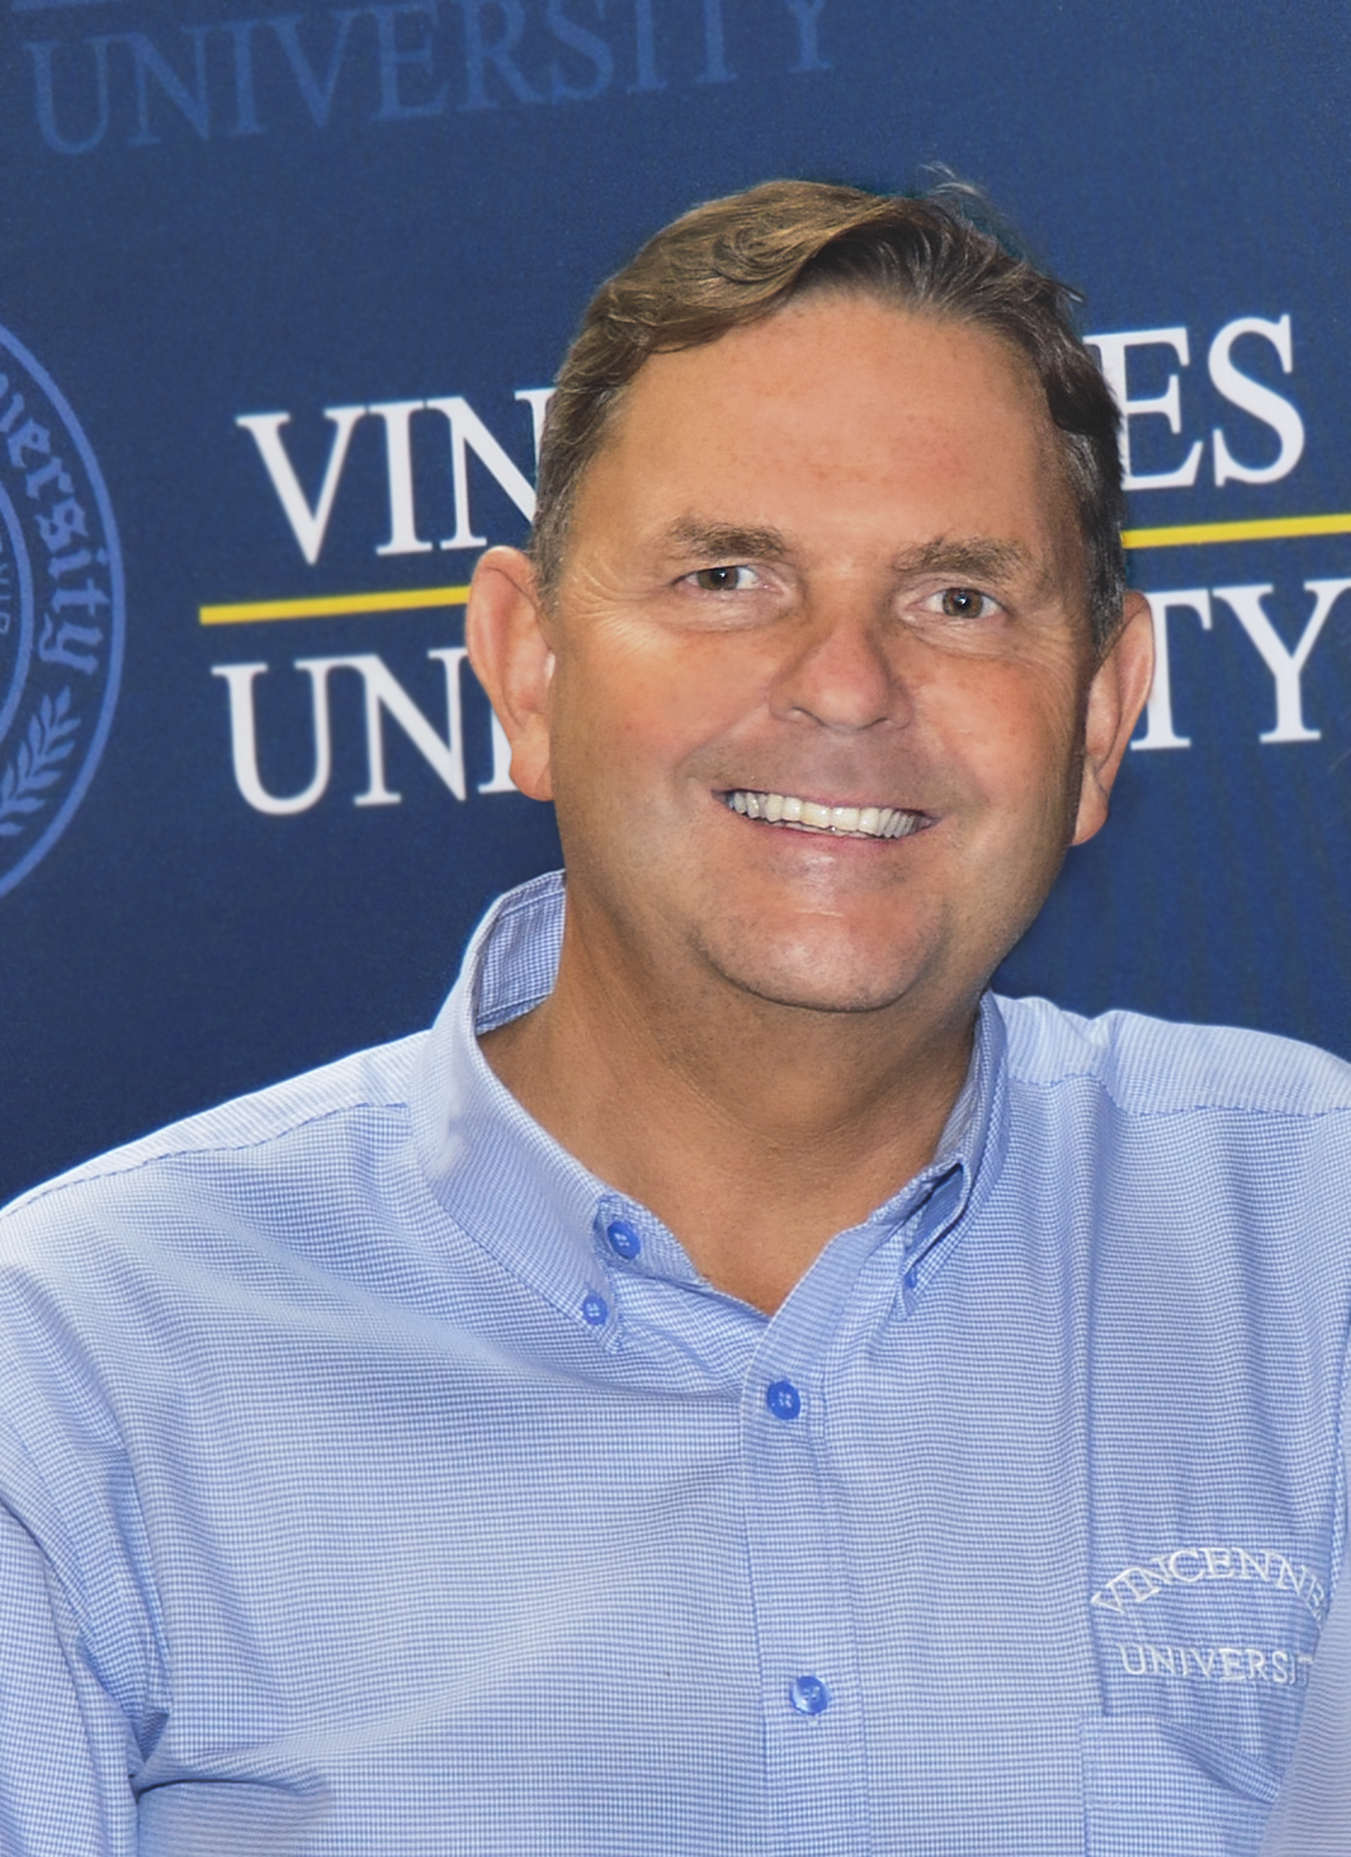 Vincennes University mourns the death of longtime leader Phil Rath